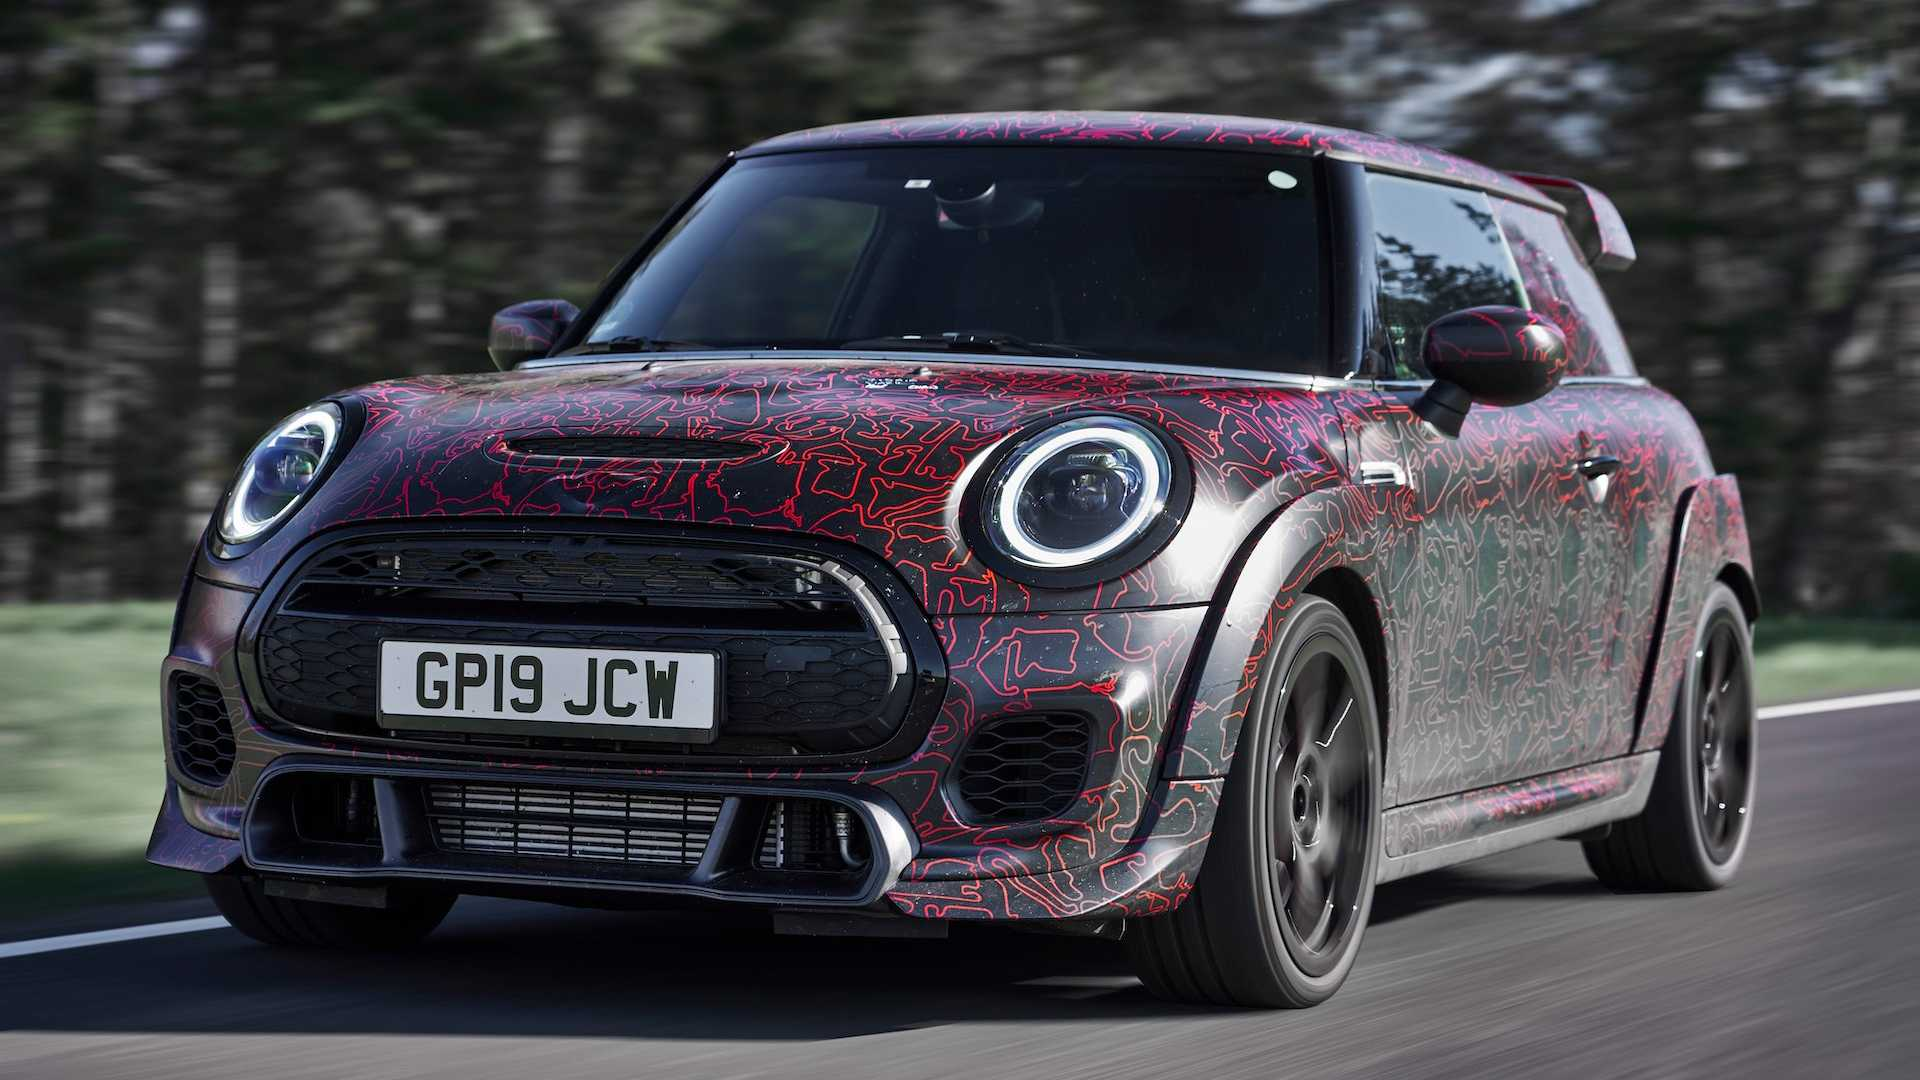 Car manufacturer Mini has demonstrated its upcoming fastest-and-greatest hot hatchback, the John Cooper Works GP, at the 24 Hours of the Nürburgring race last weekend